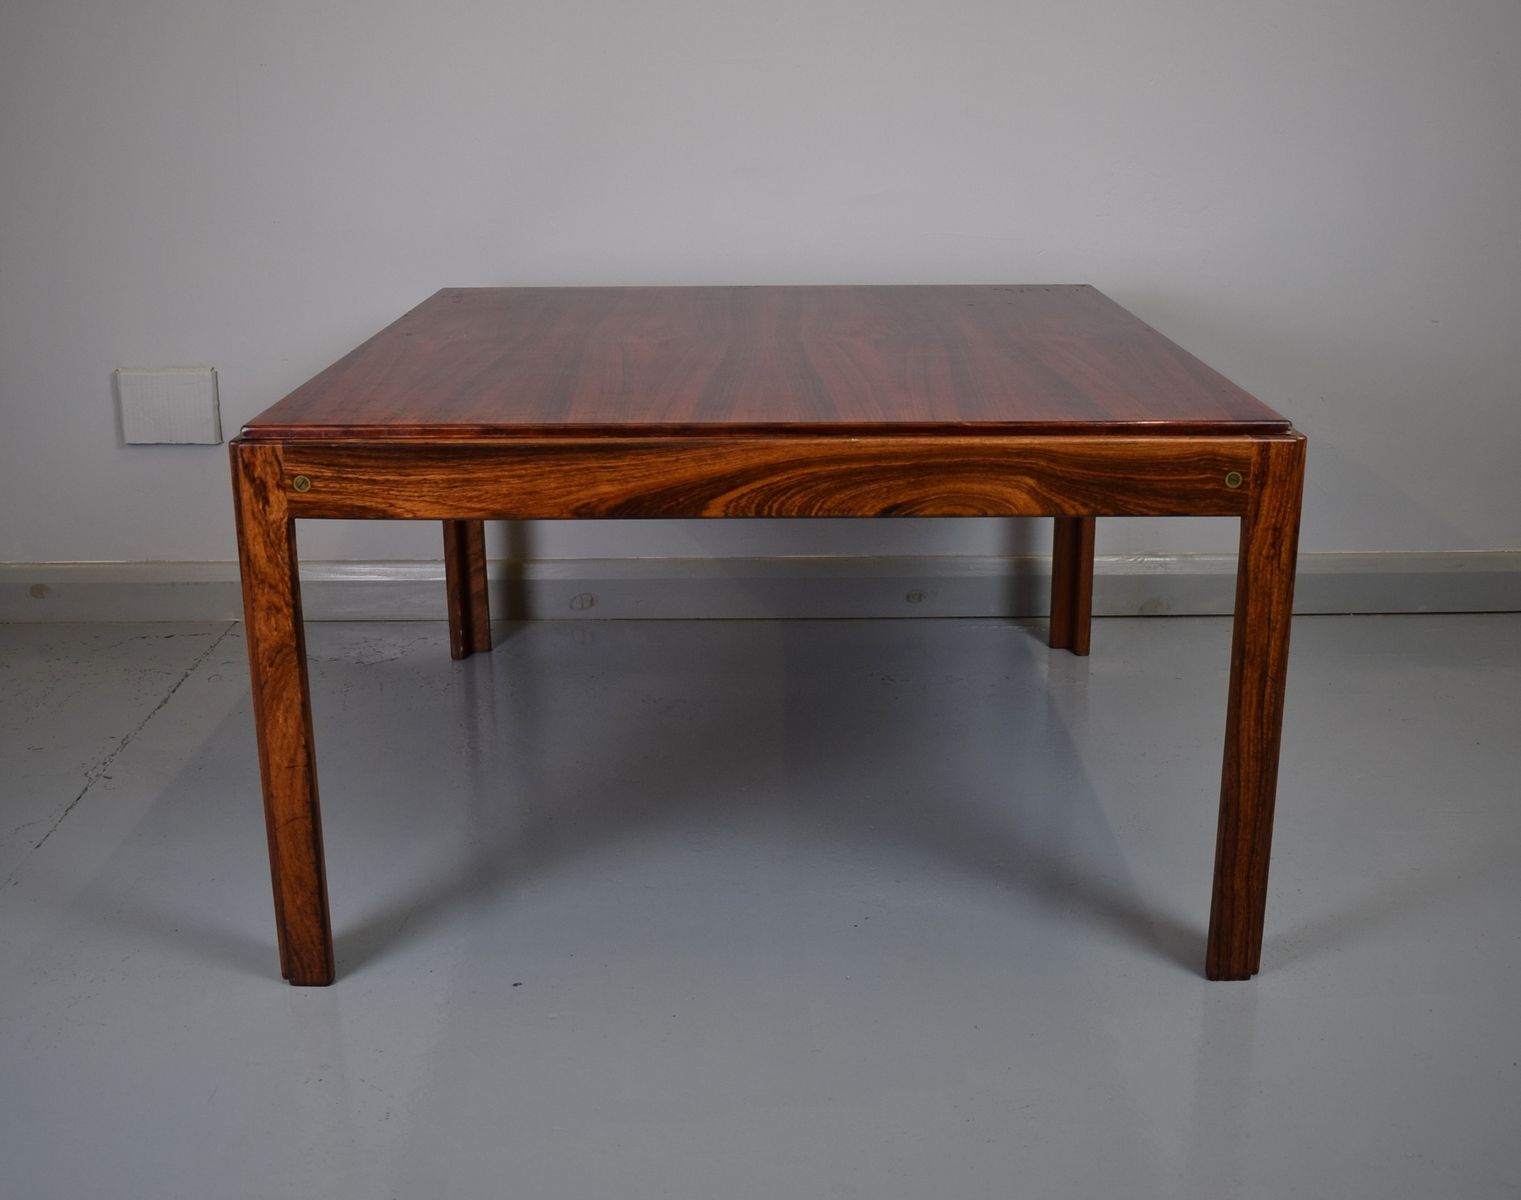 Exceptional Danish Rosewood Coffee Table By Illum Wikkelso For Silkeborg, 1960s